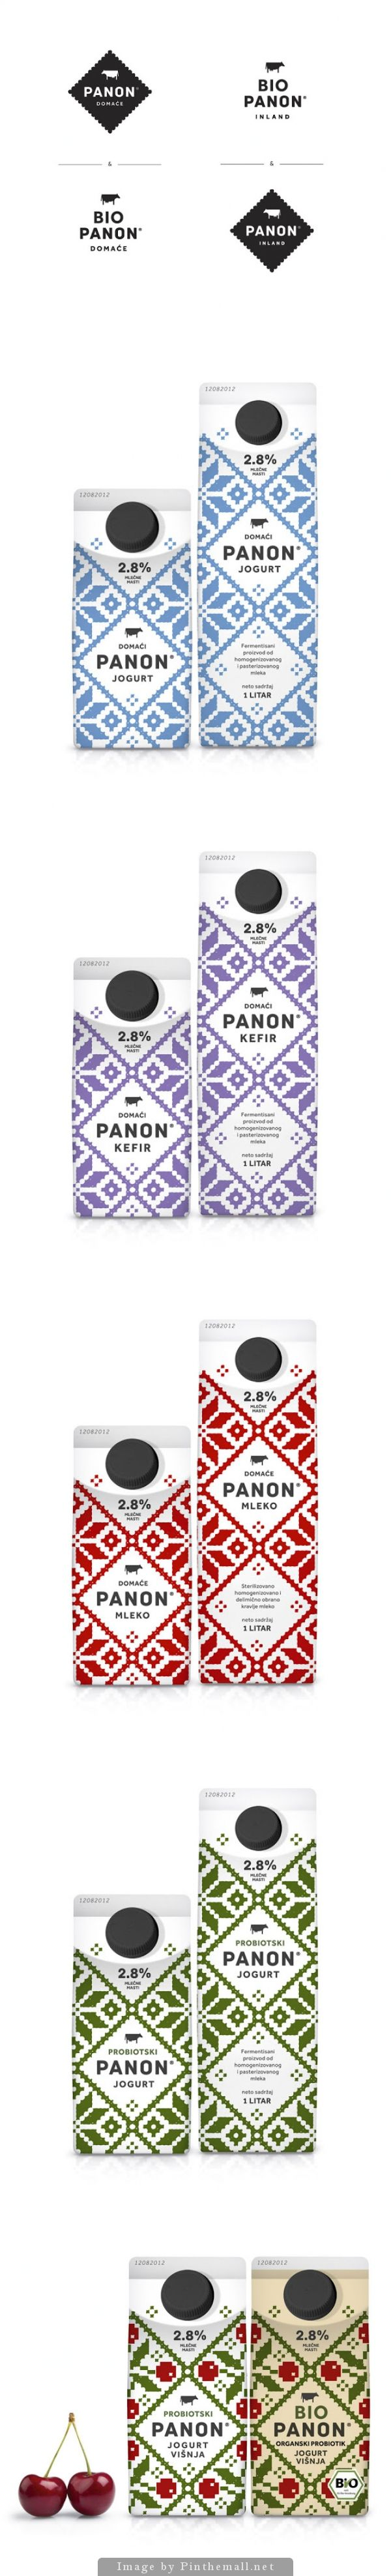 PANON Dairy Agency: Peter Gregson Studio Country: Serbia